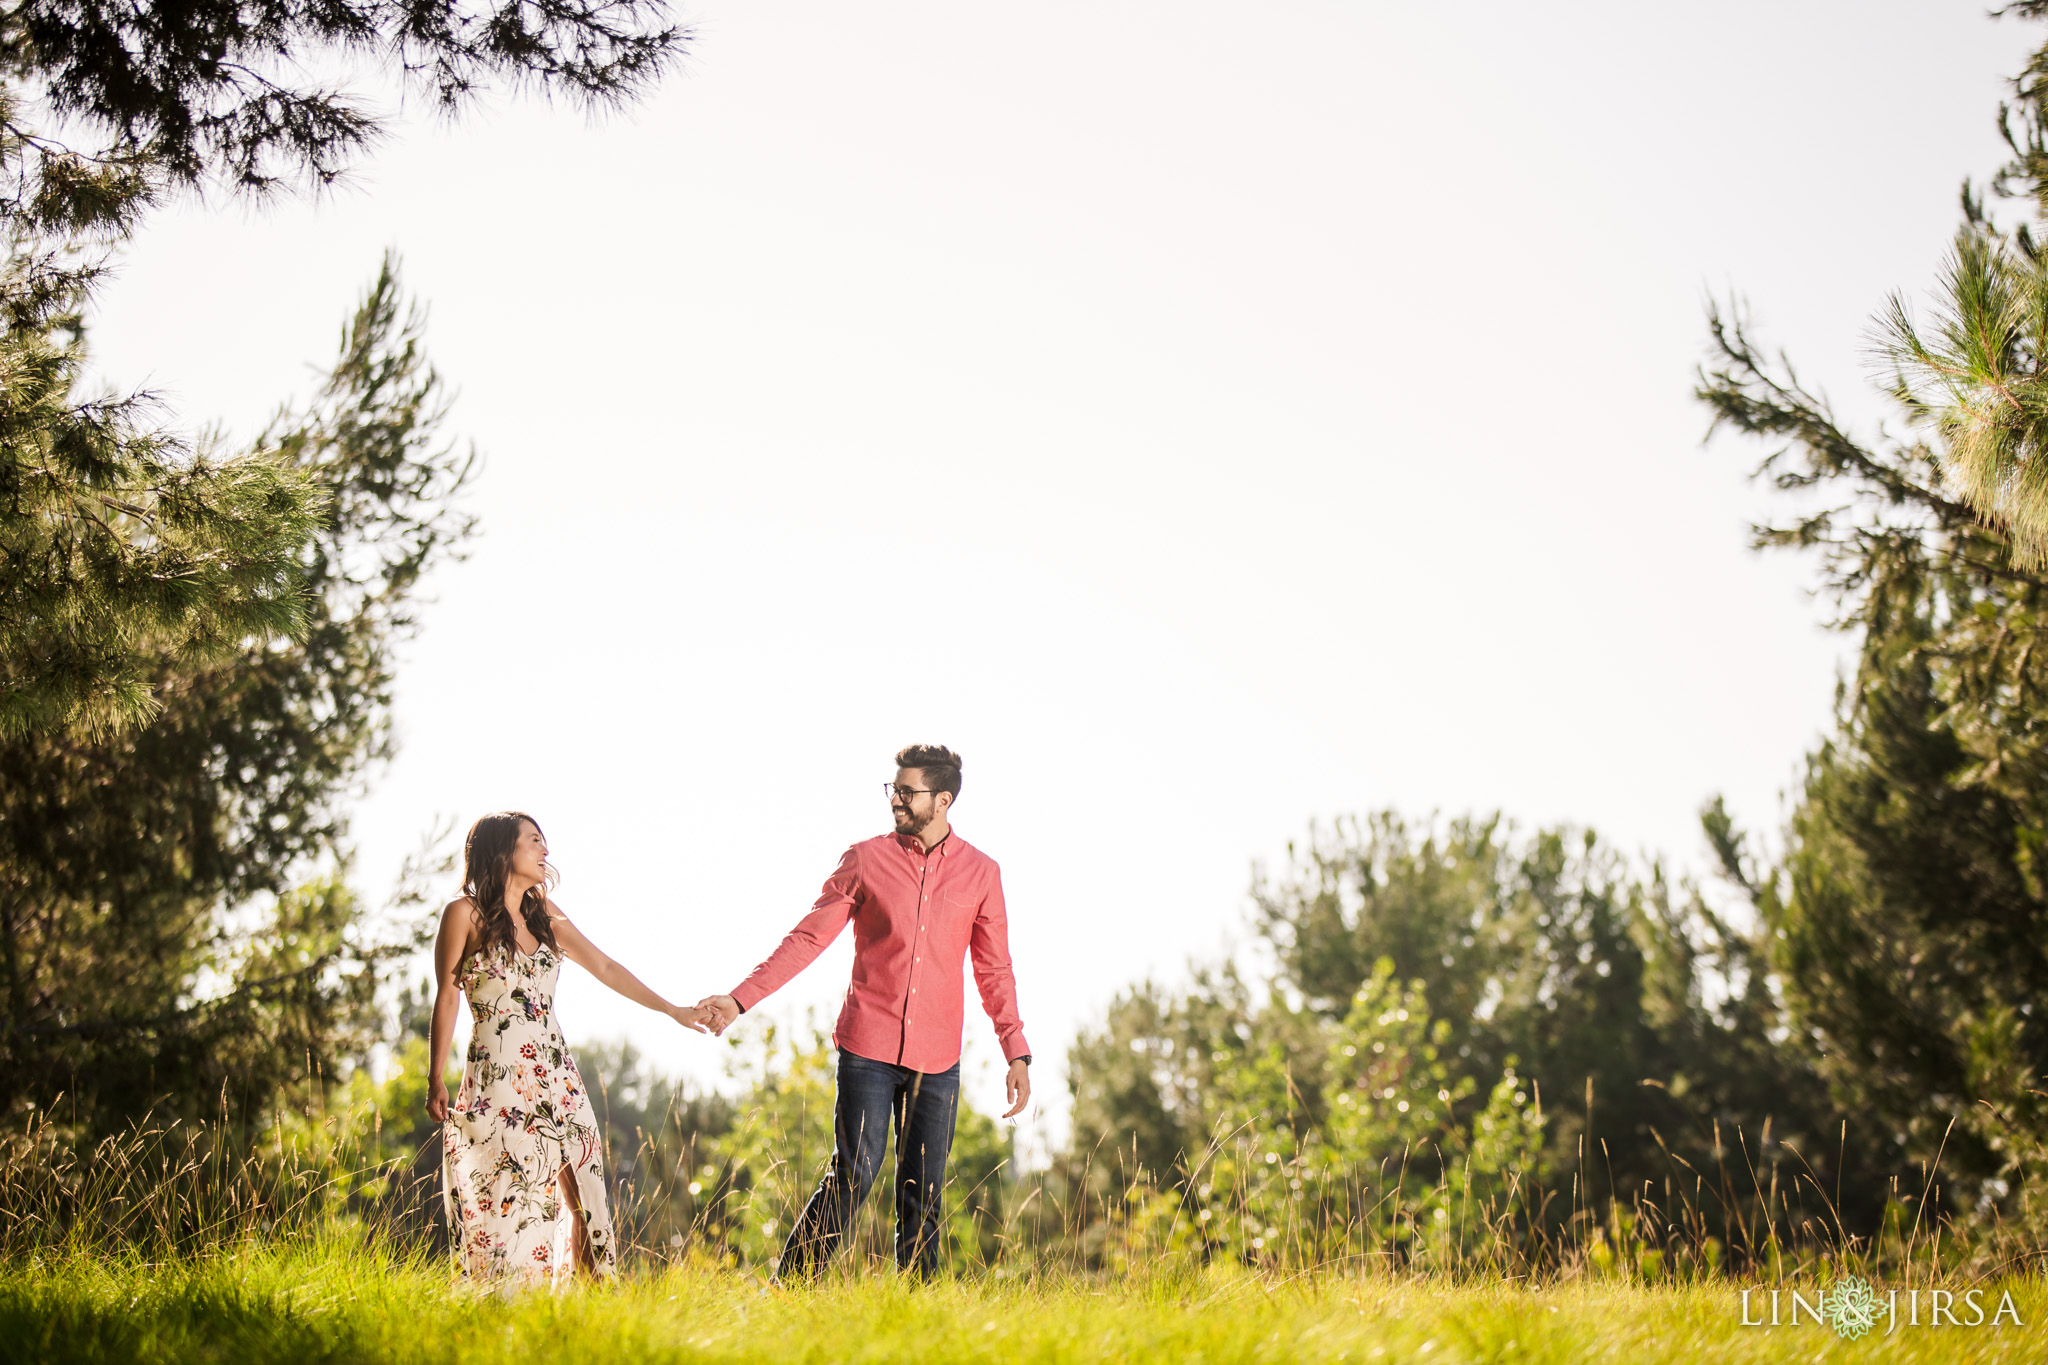 004 jeffrey open space engagement photography